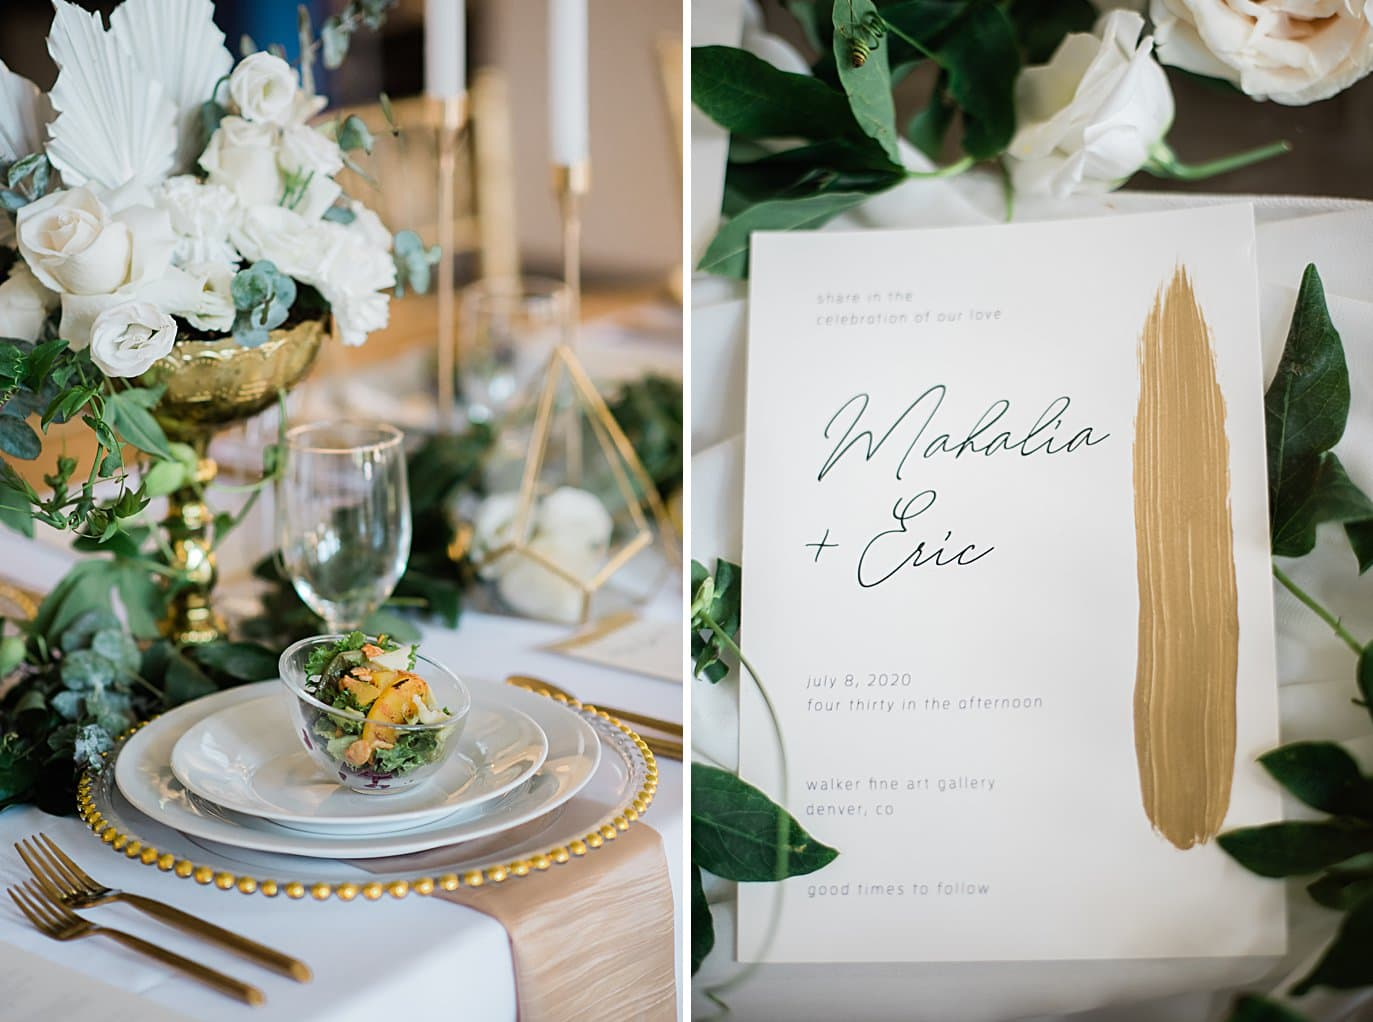 peach salad and gold accents at dinner setting at Walker Fine Art Gallery Wedding by Boulder Wedding Photographer Jennie Crate